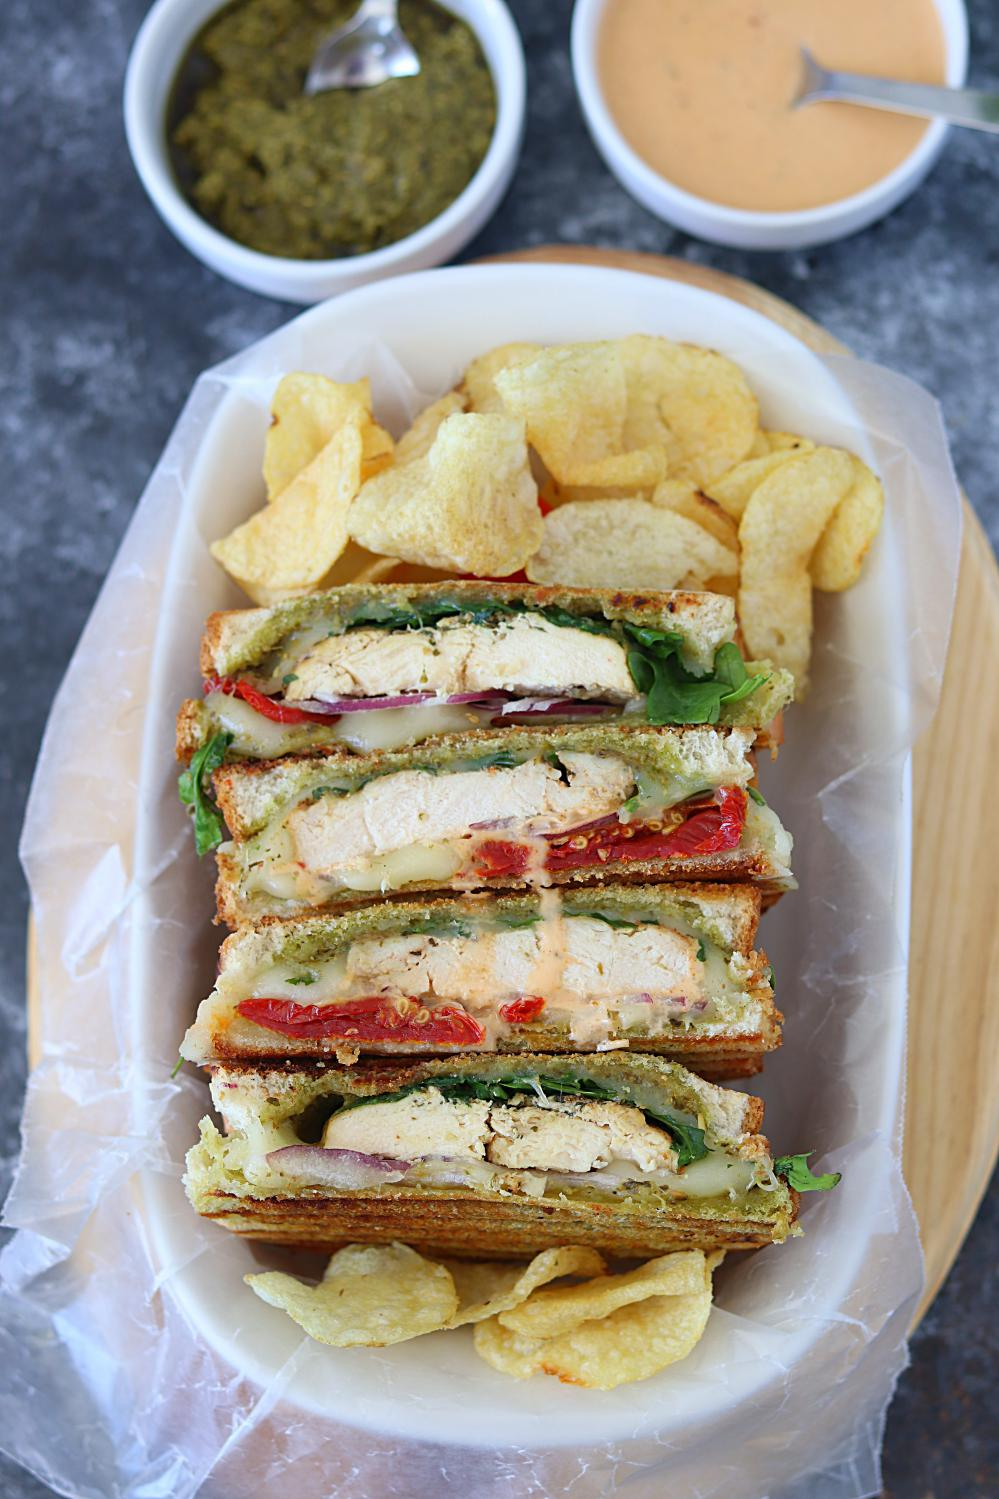 Grilled Chicken Pesto Panini - Ruchiskitchen